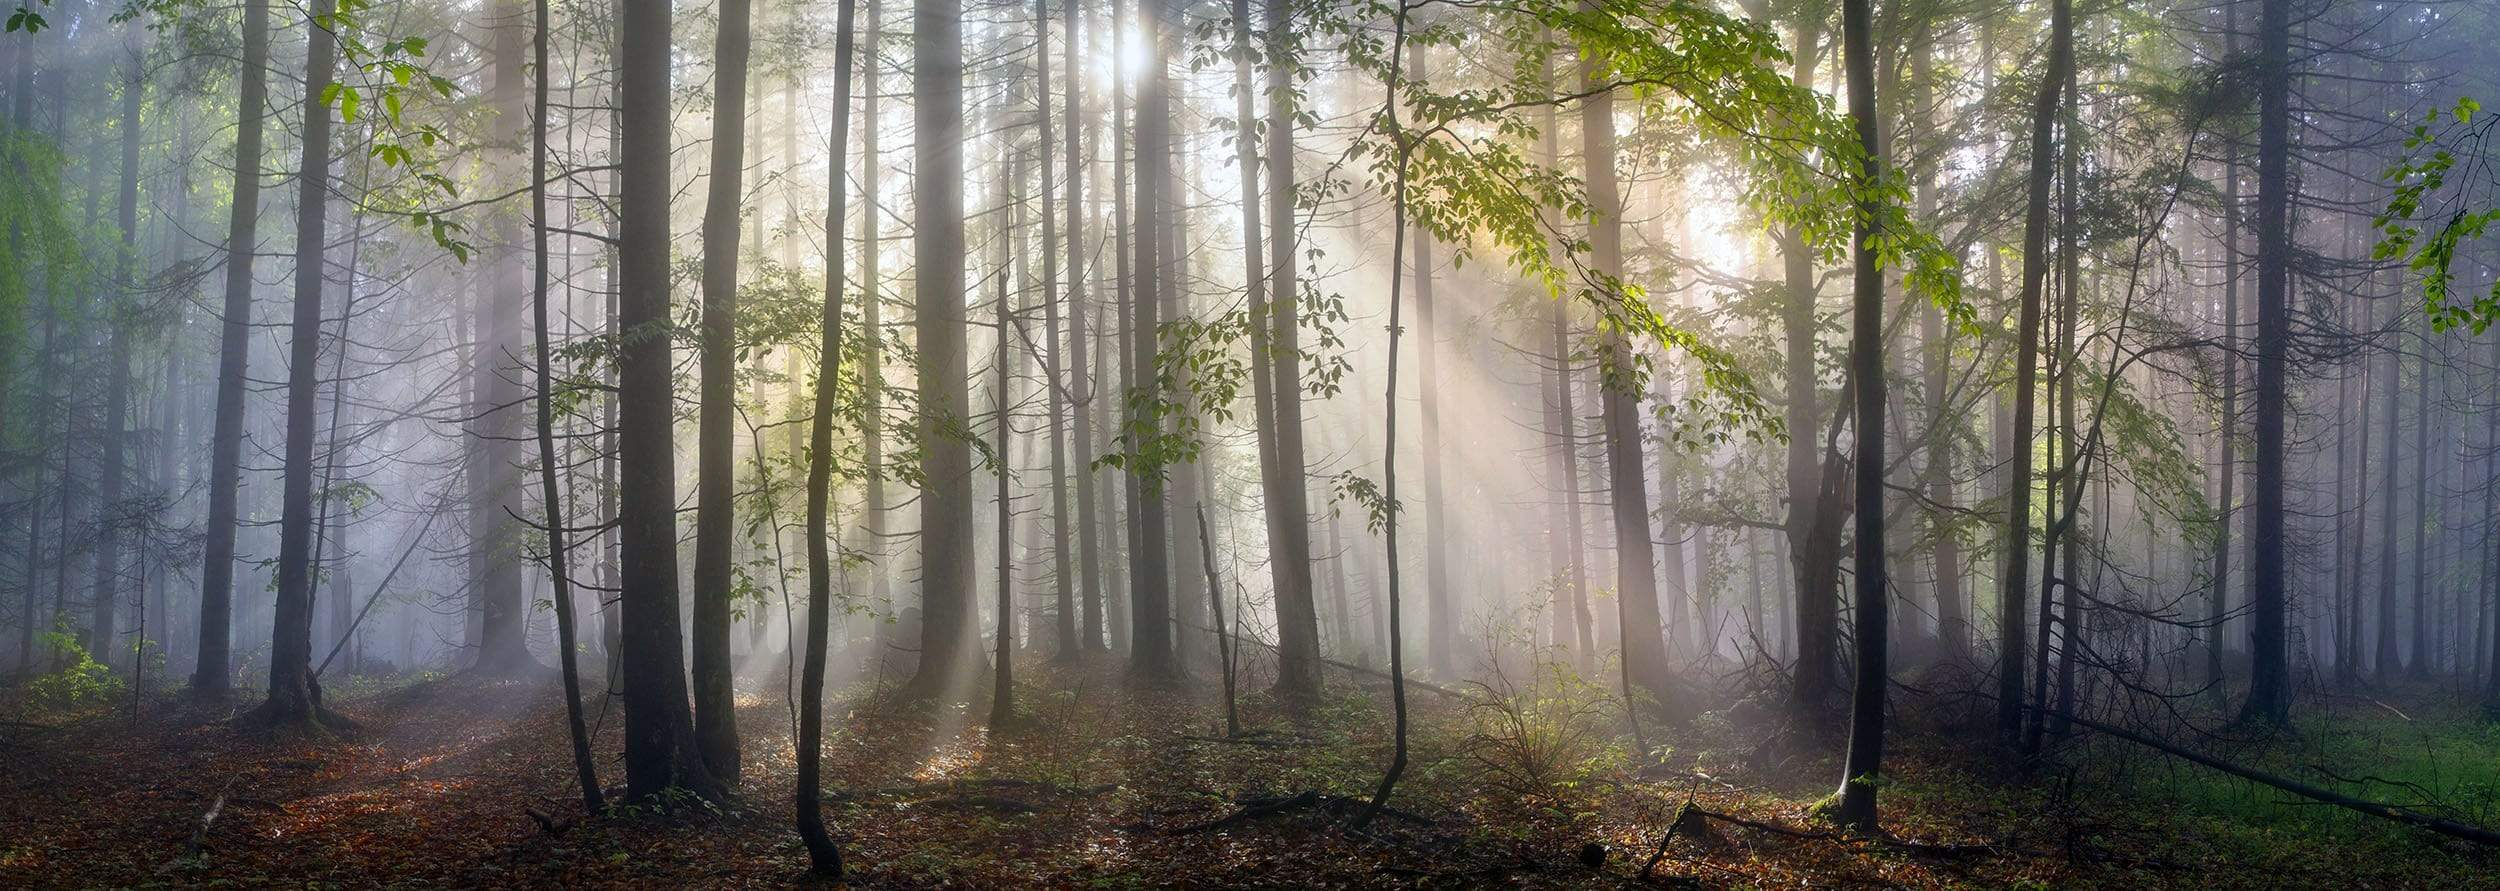 Fog in forest with sun beams